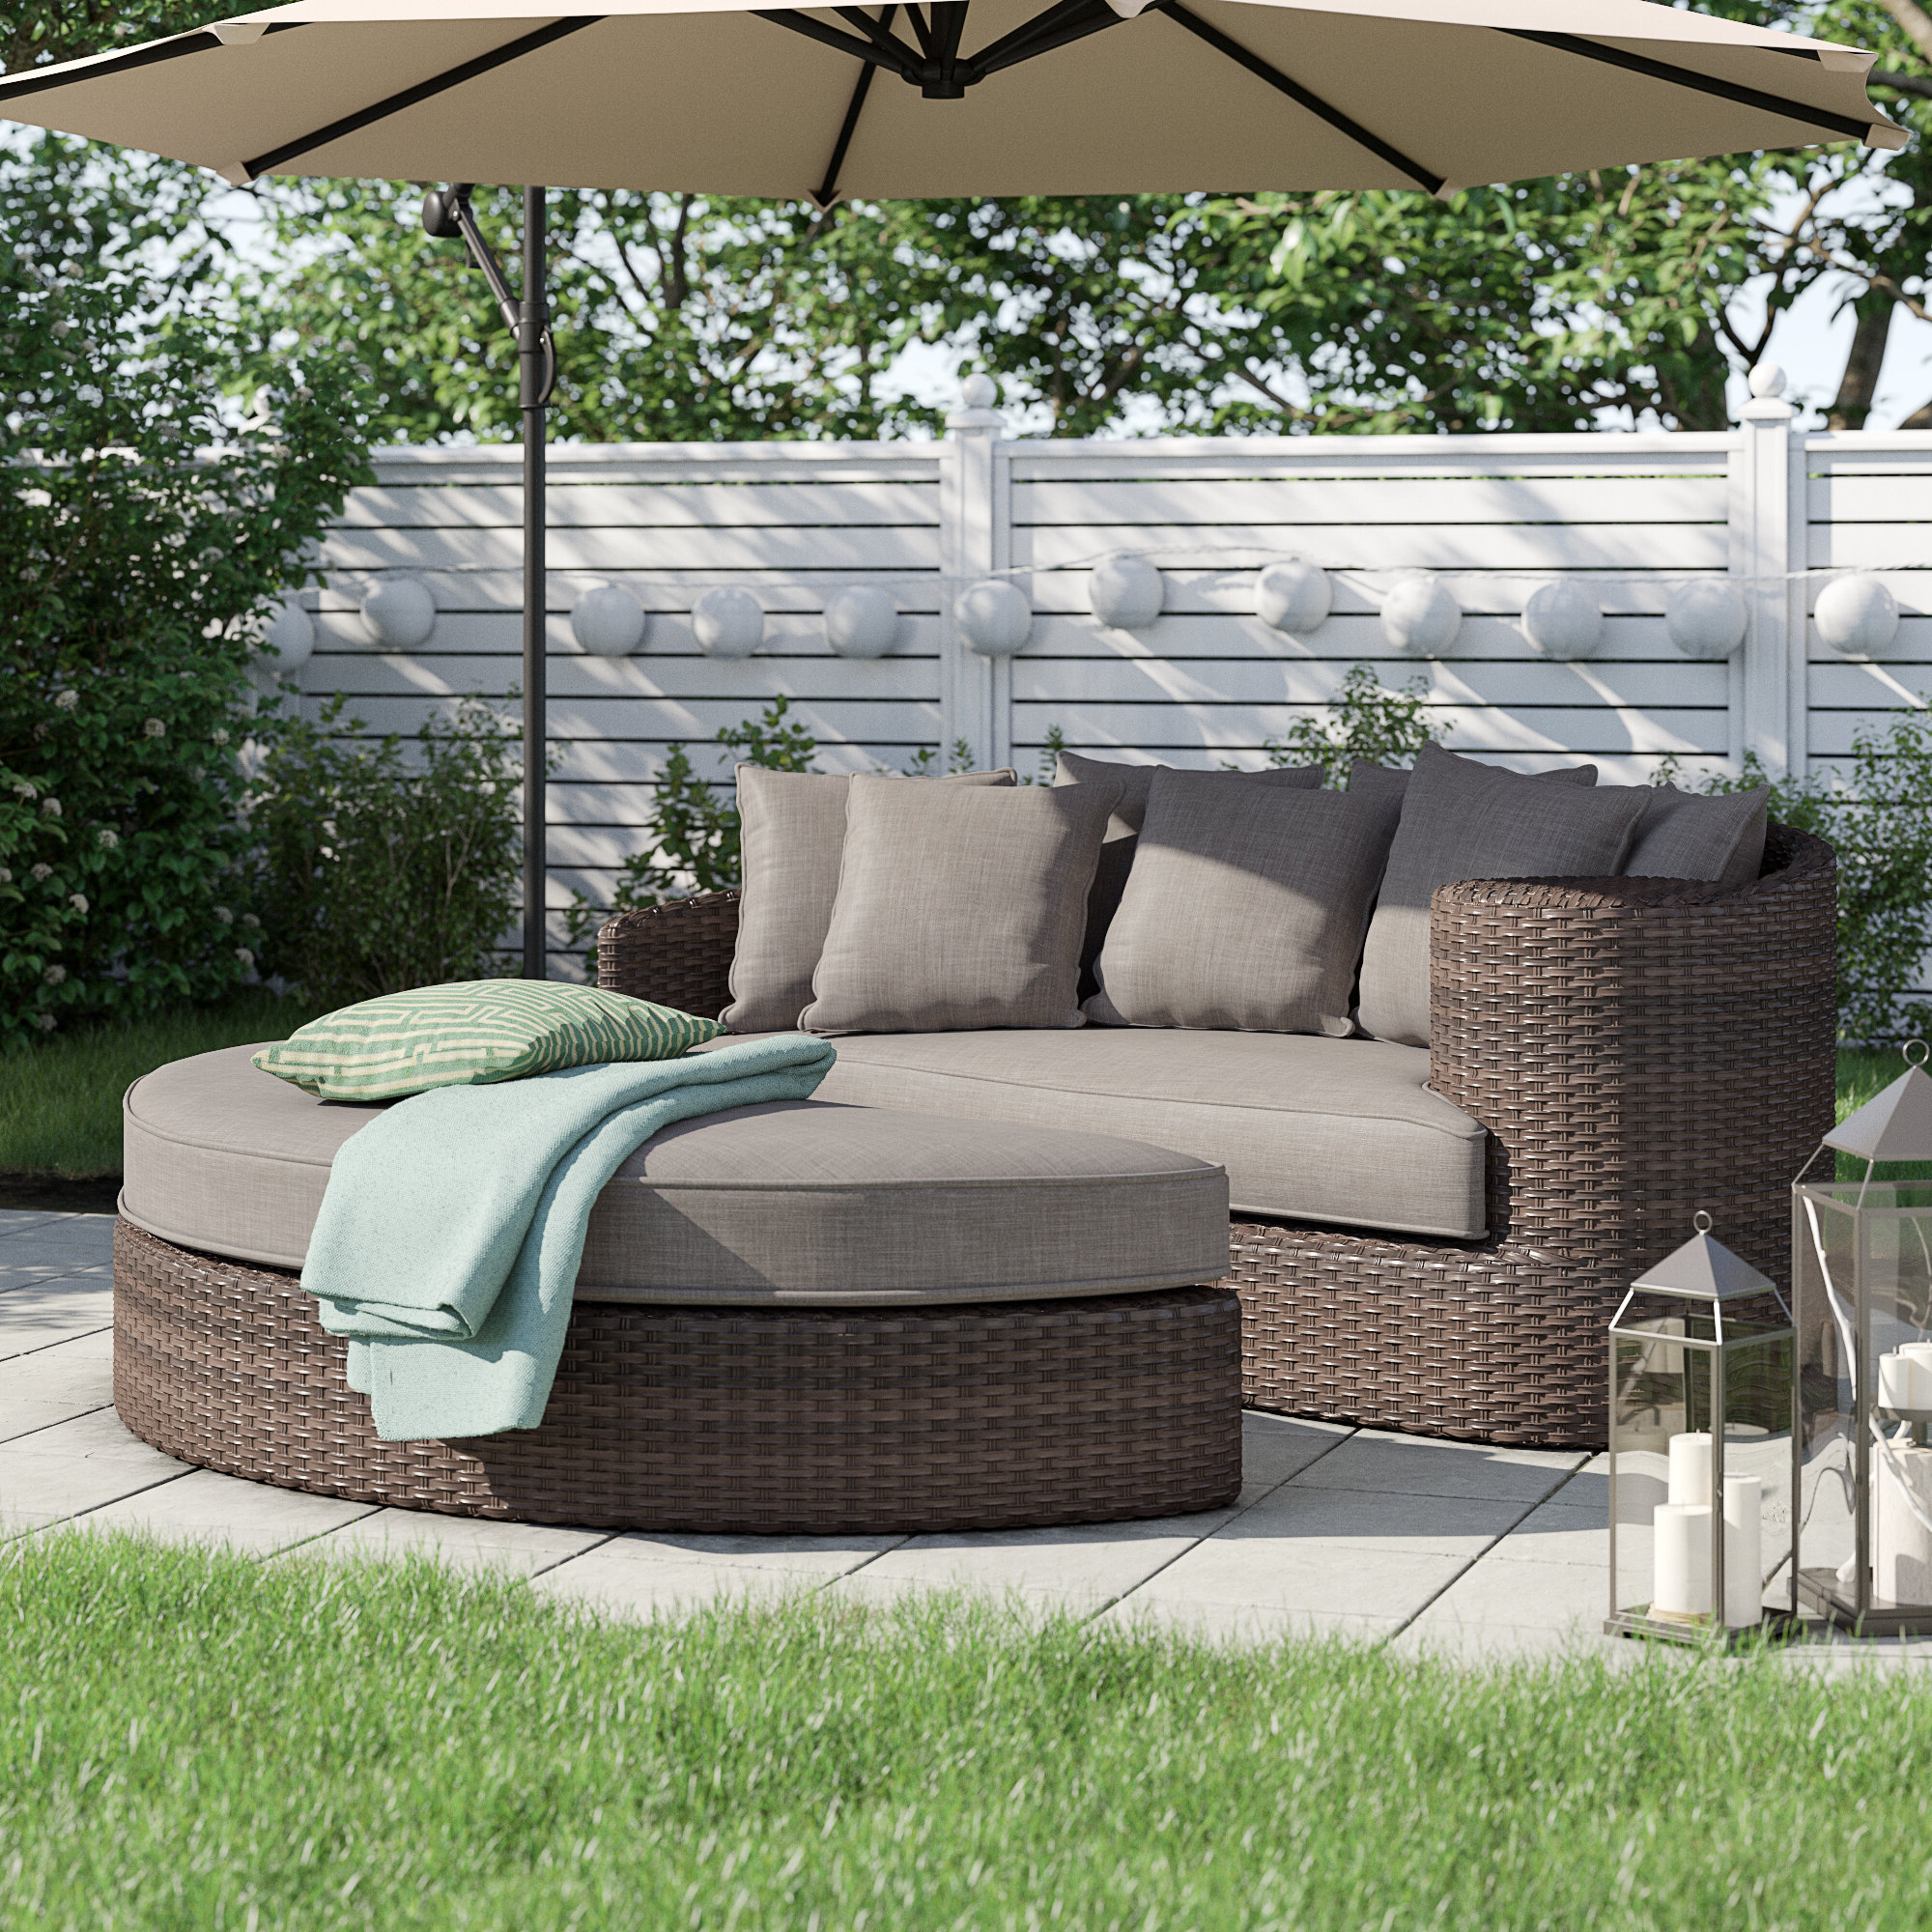 Keiran Patio Daybeds With Cushions Intended For Newest Whyte Contemporary Patio Daybed With Cushions (View 11 of 20)